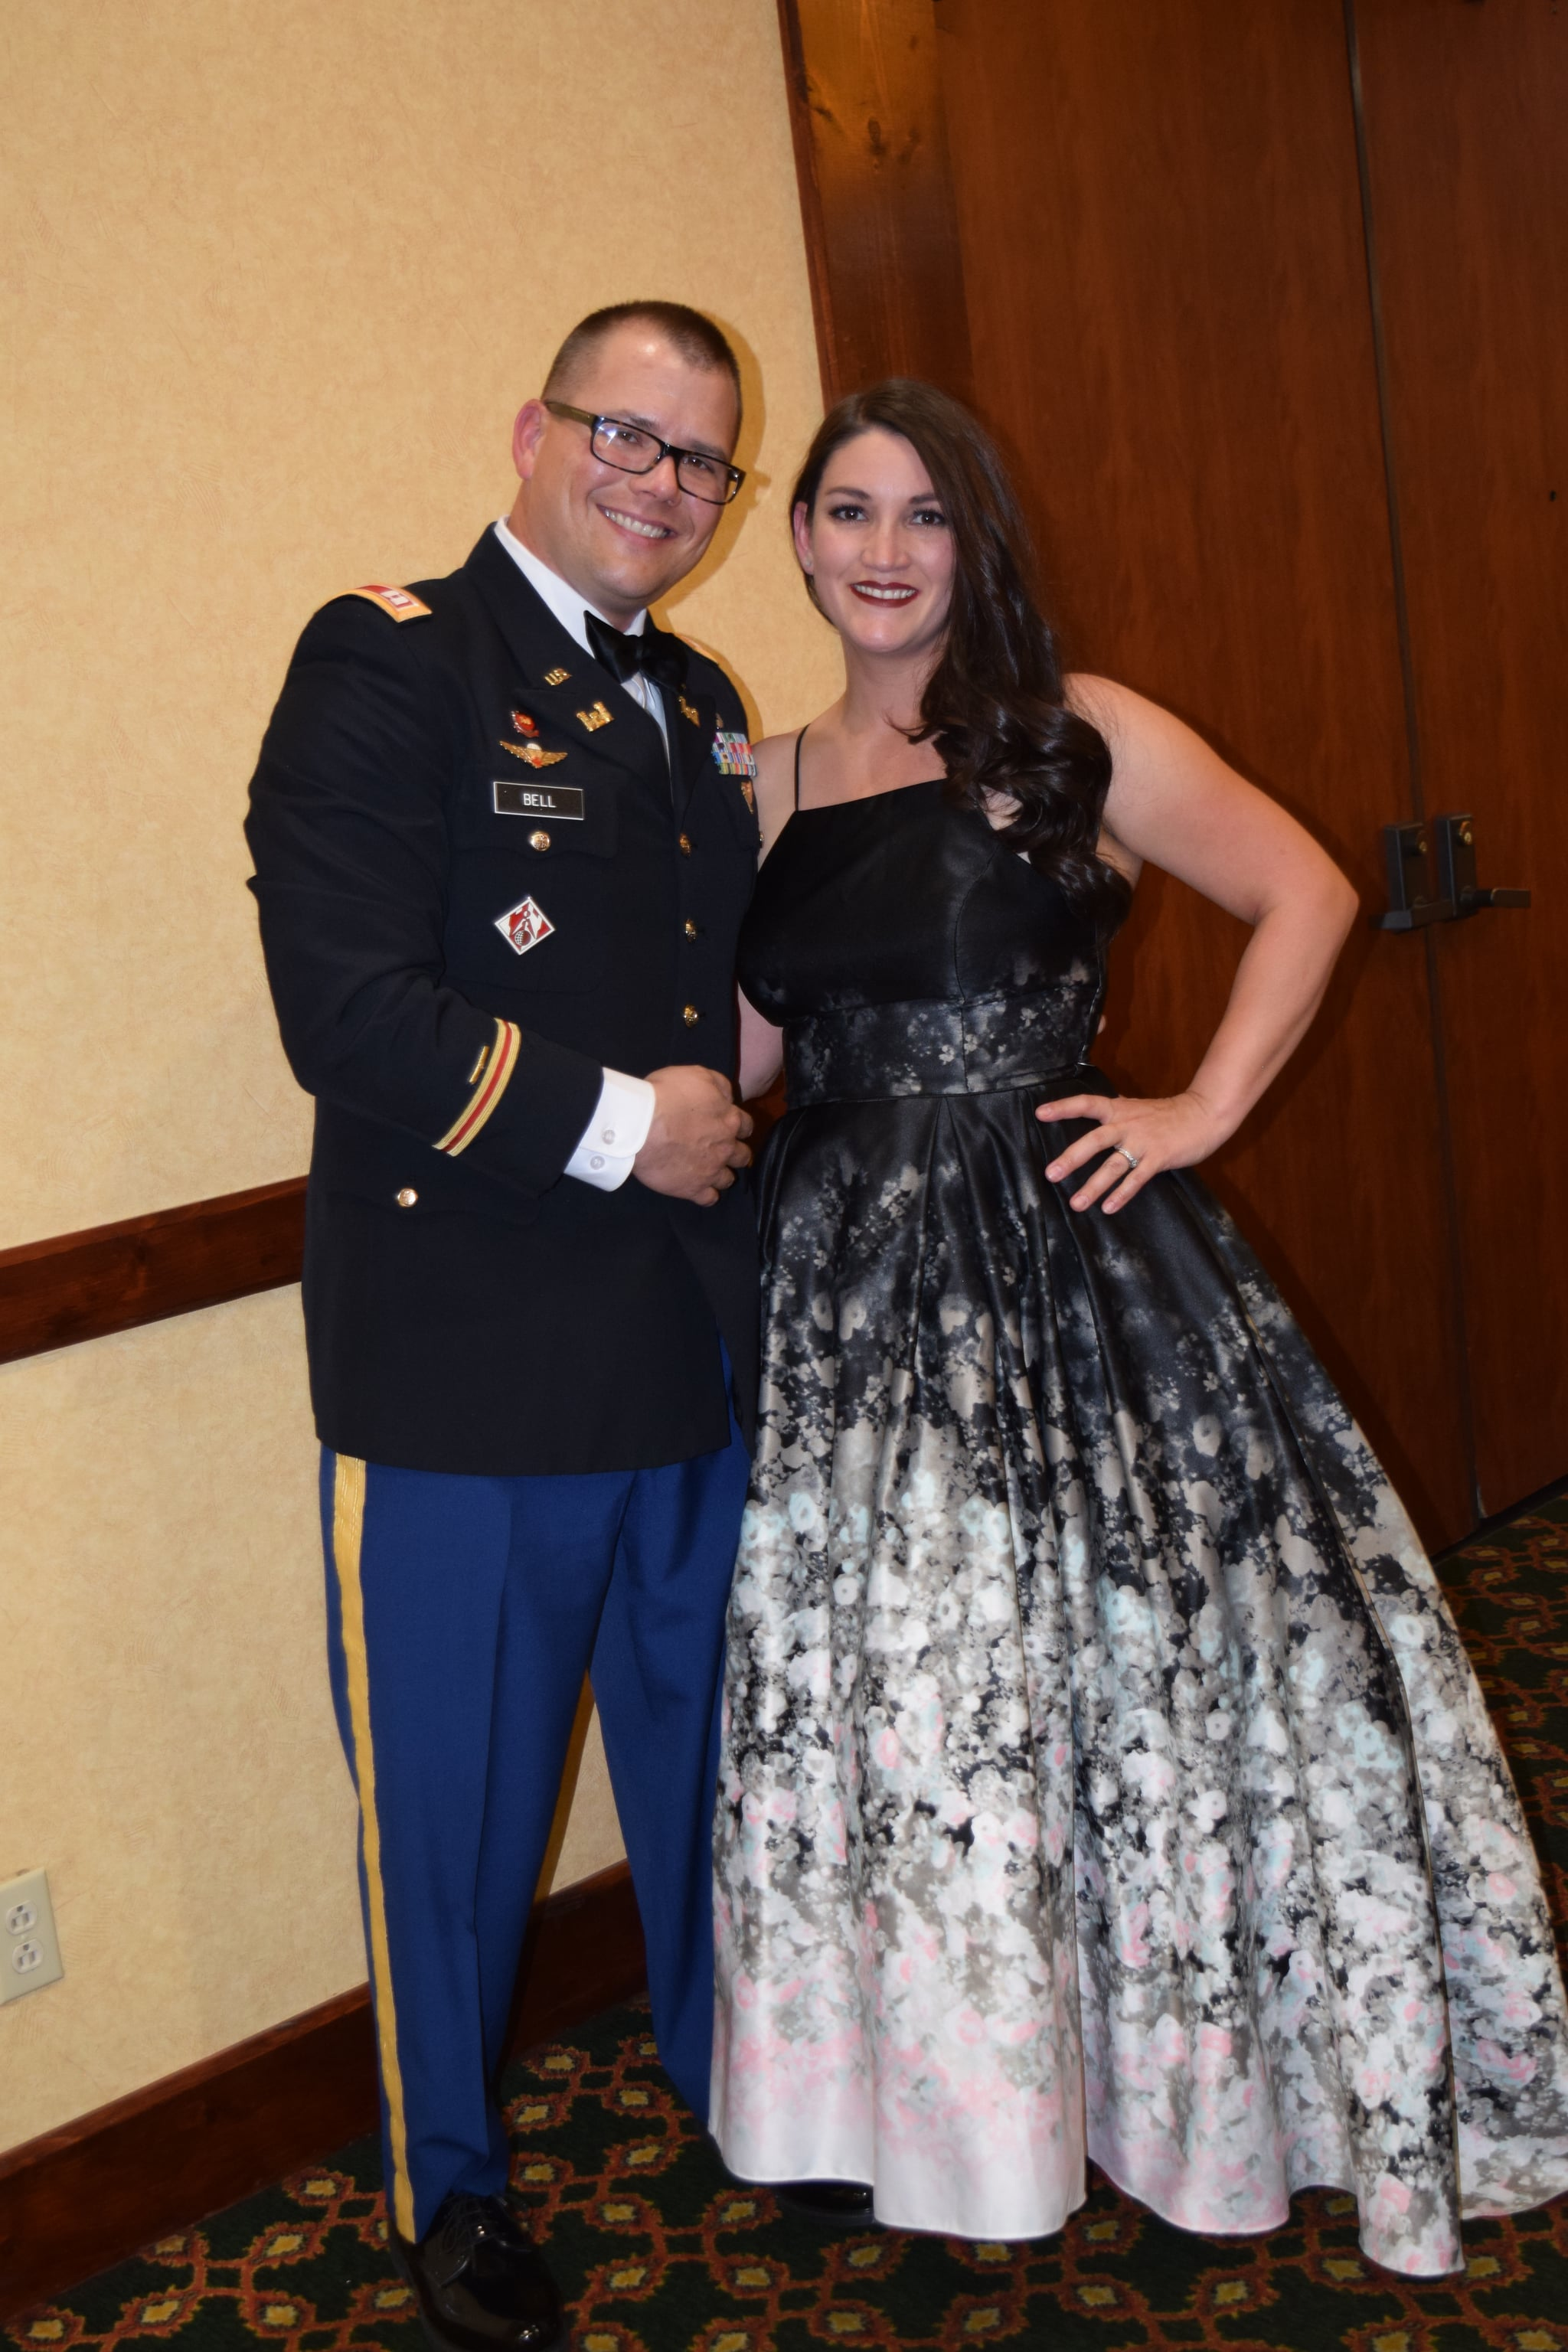 CPT and Mrs. Bell